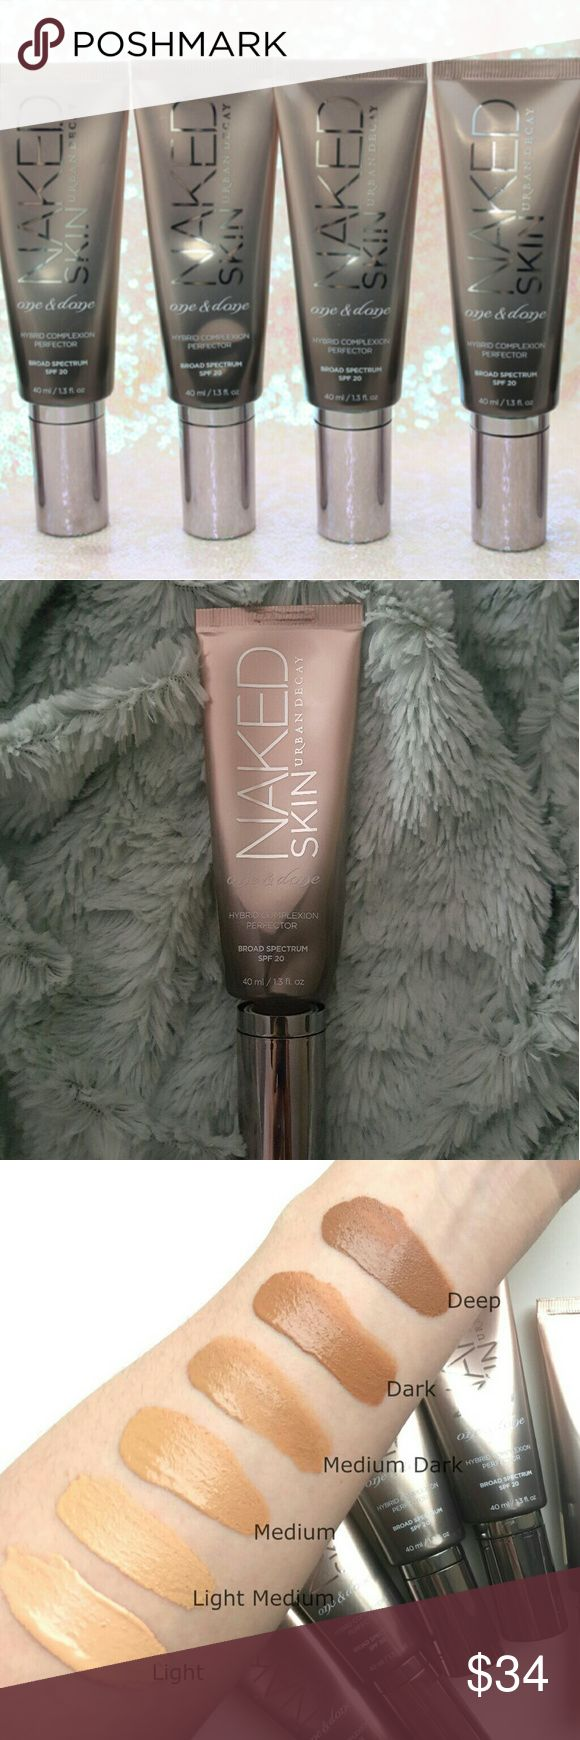 Urban decay (med light) naked One and done With Urban Decay's Naked Skin One & Done Hybrid Complexion Perfector, you'll get the benefits of skin treatment and protection with the coverage of a sheer foundation. One step and you're done. Instantly blur imperfections and even out skin tone - for beautifully perfected, ultra definition skin. (Naked Skin One & Done gets the job done so well. Lightly used. Shade: (Med light) No returns on cosmetics. Pump nozel dispenser. Urban Decay Makeup…